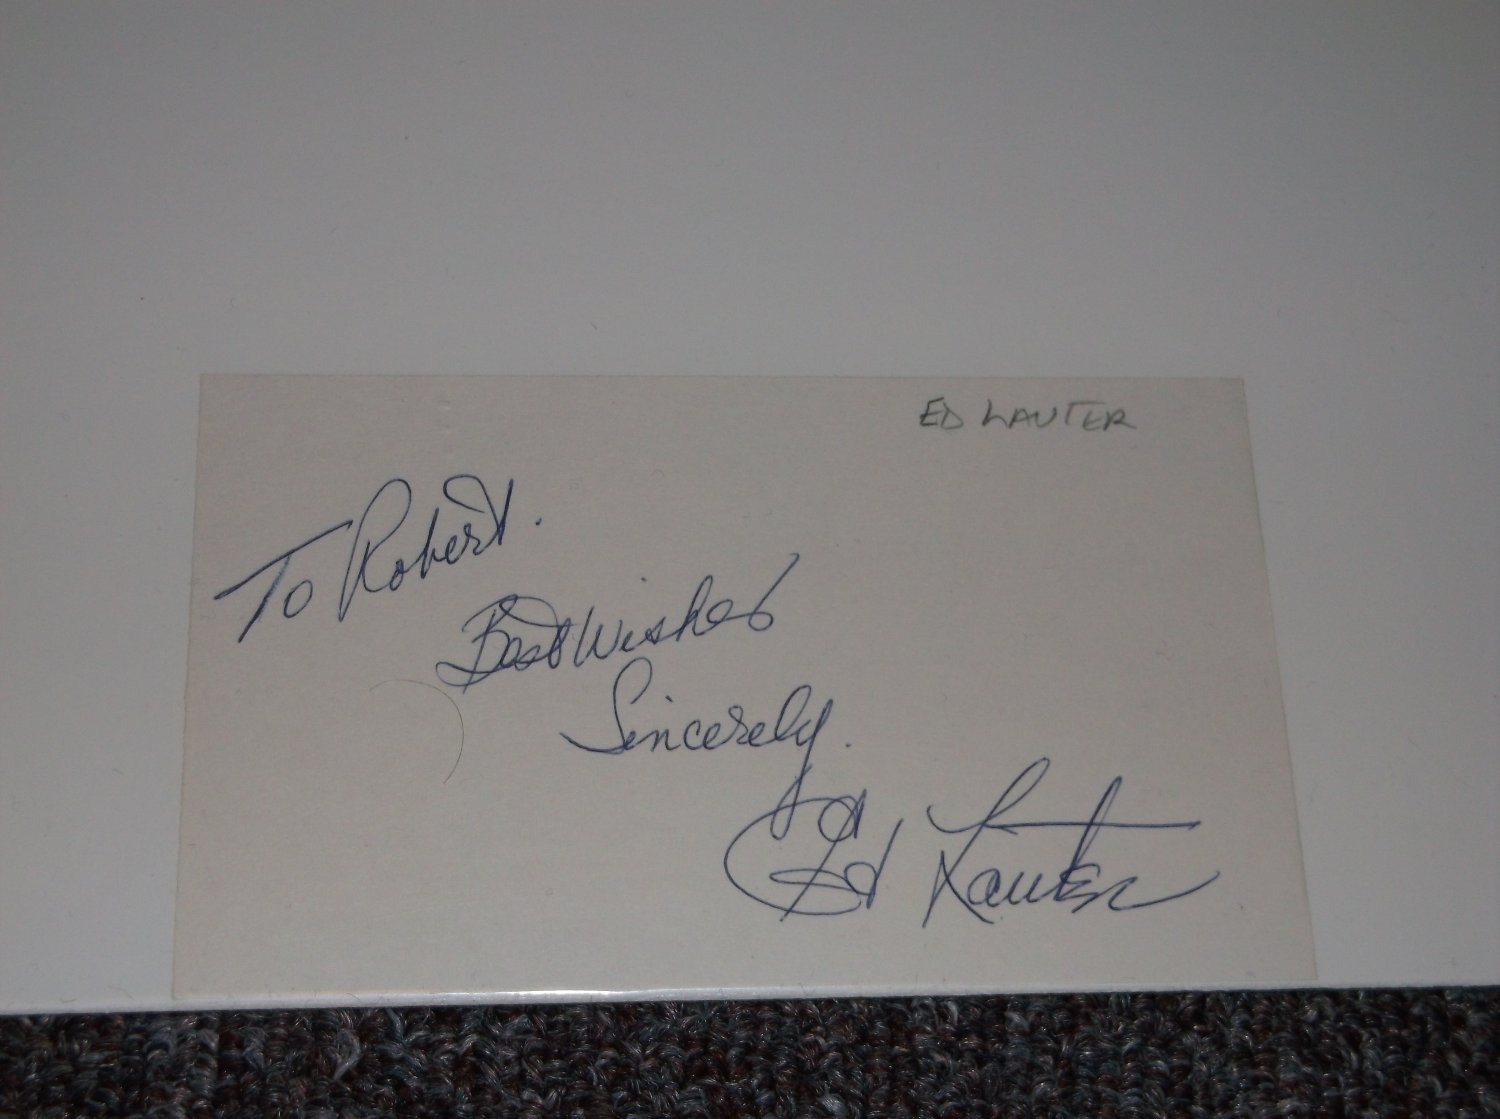 Ed Lauter (1938-2013) signed inscribed 3x5 card